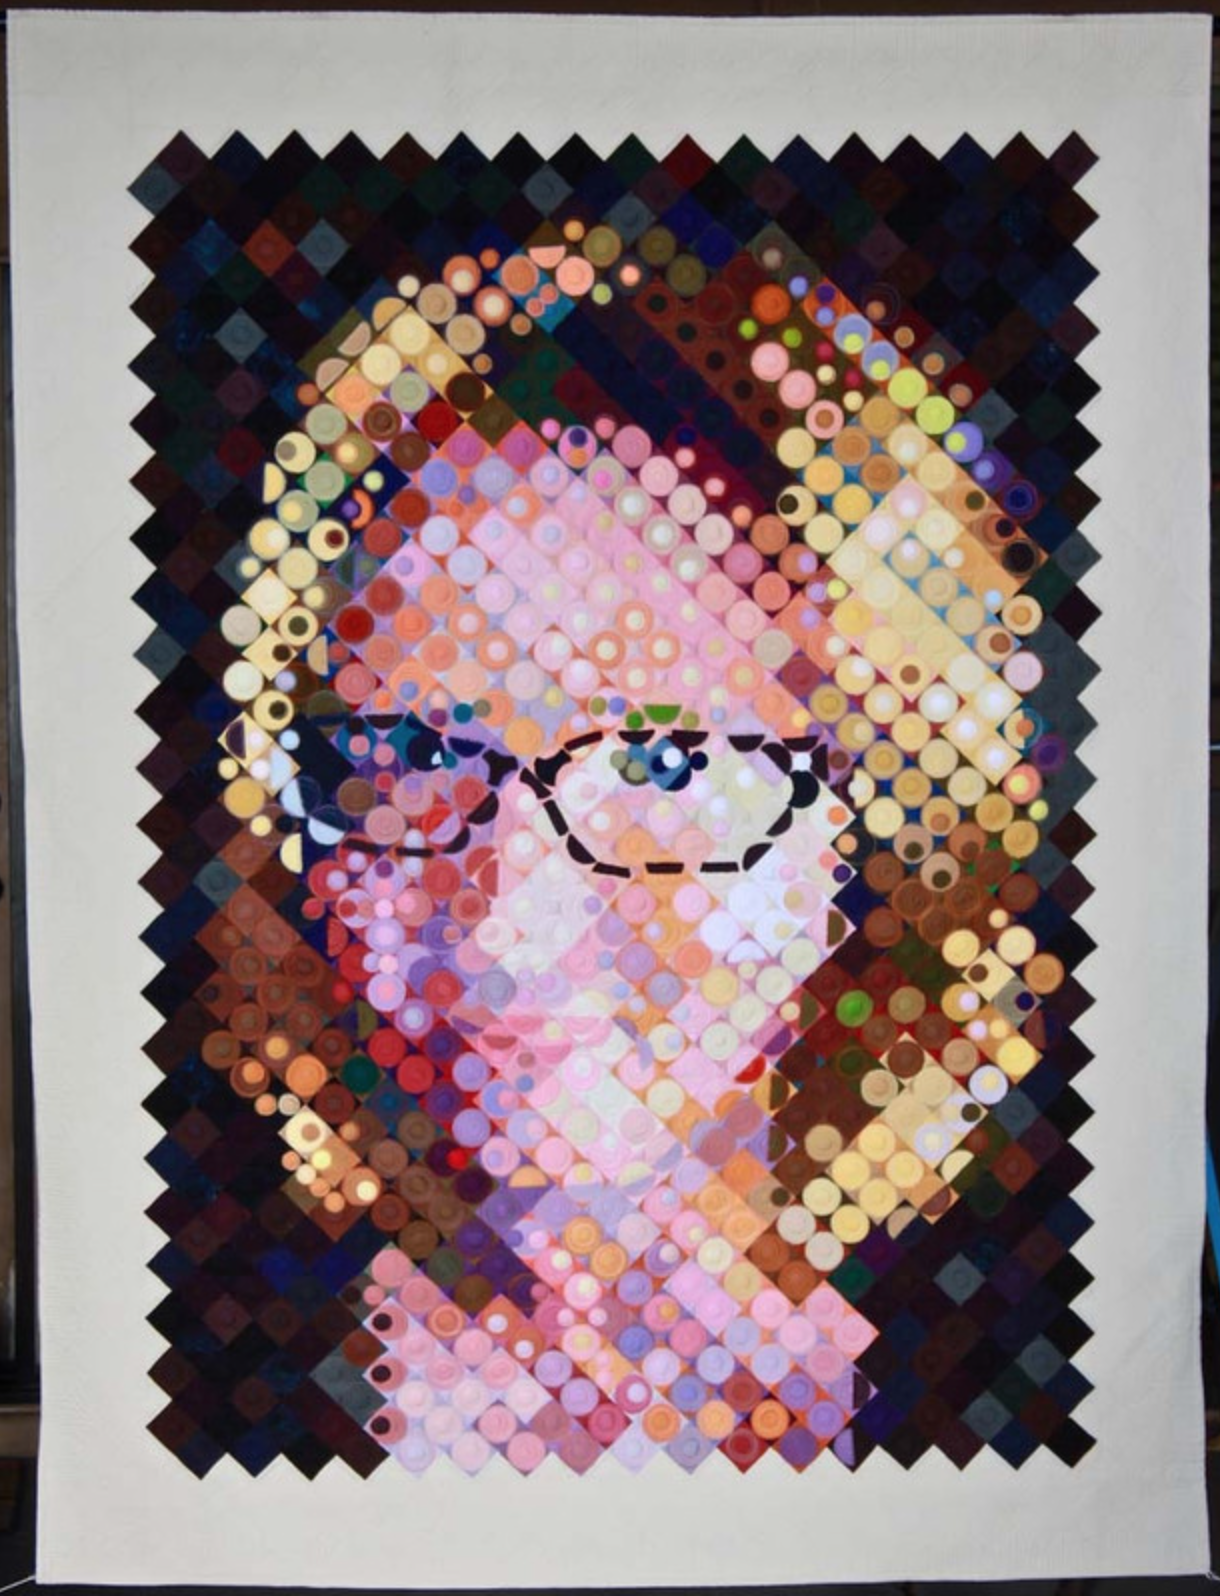 My Big Face by Cindy Stohn (Photo from Mancuso 2021 Spring Quilt Festival website)